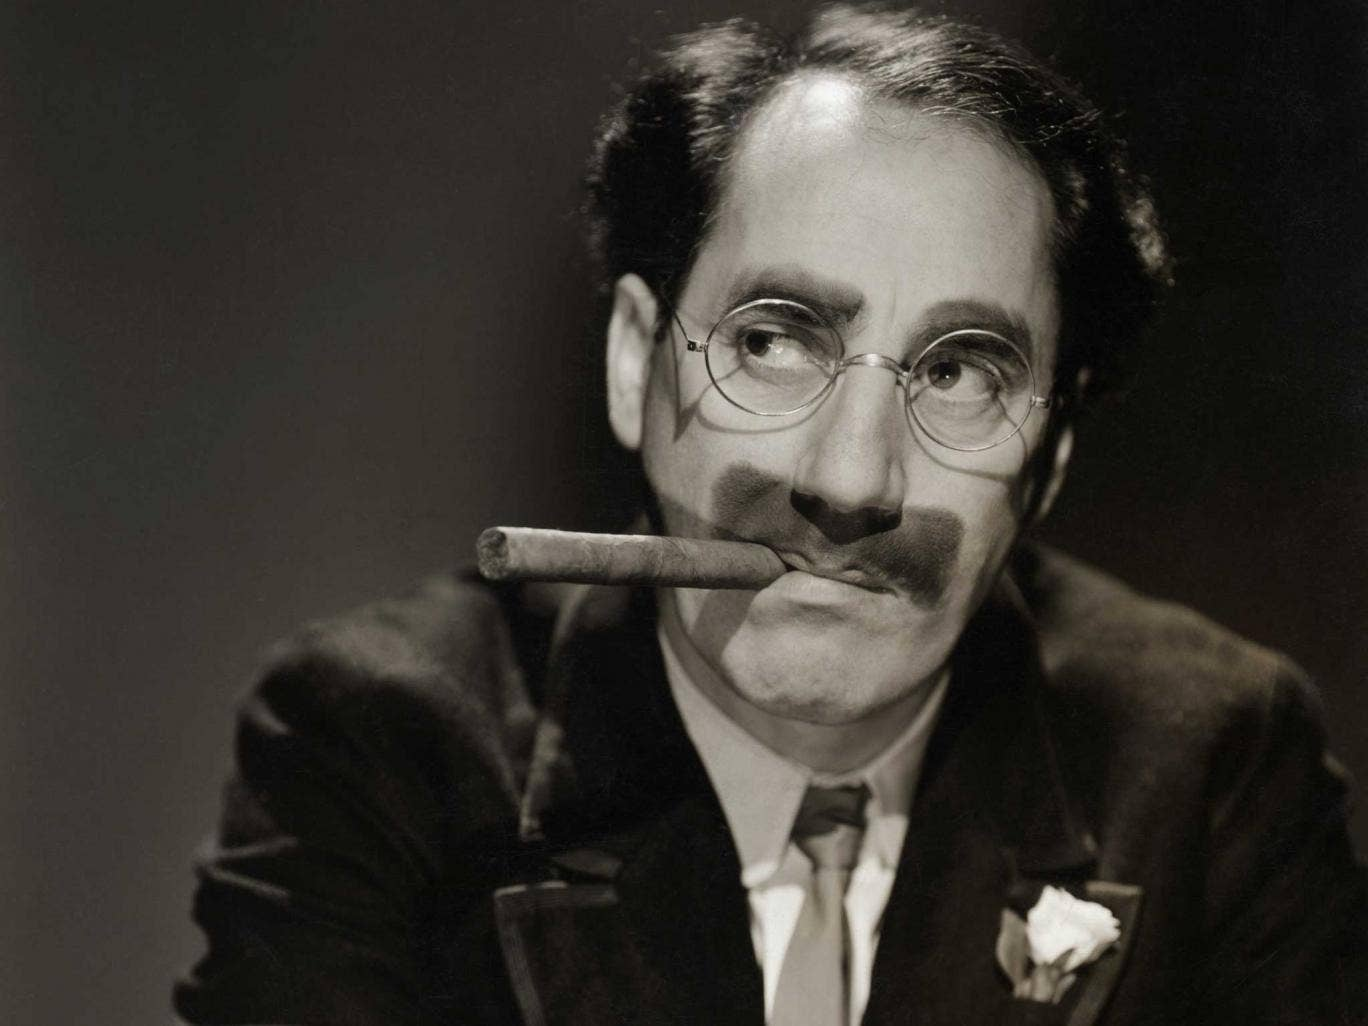 Up in smoke: Groucho Marx